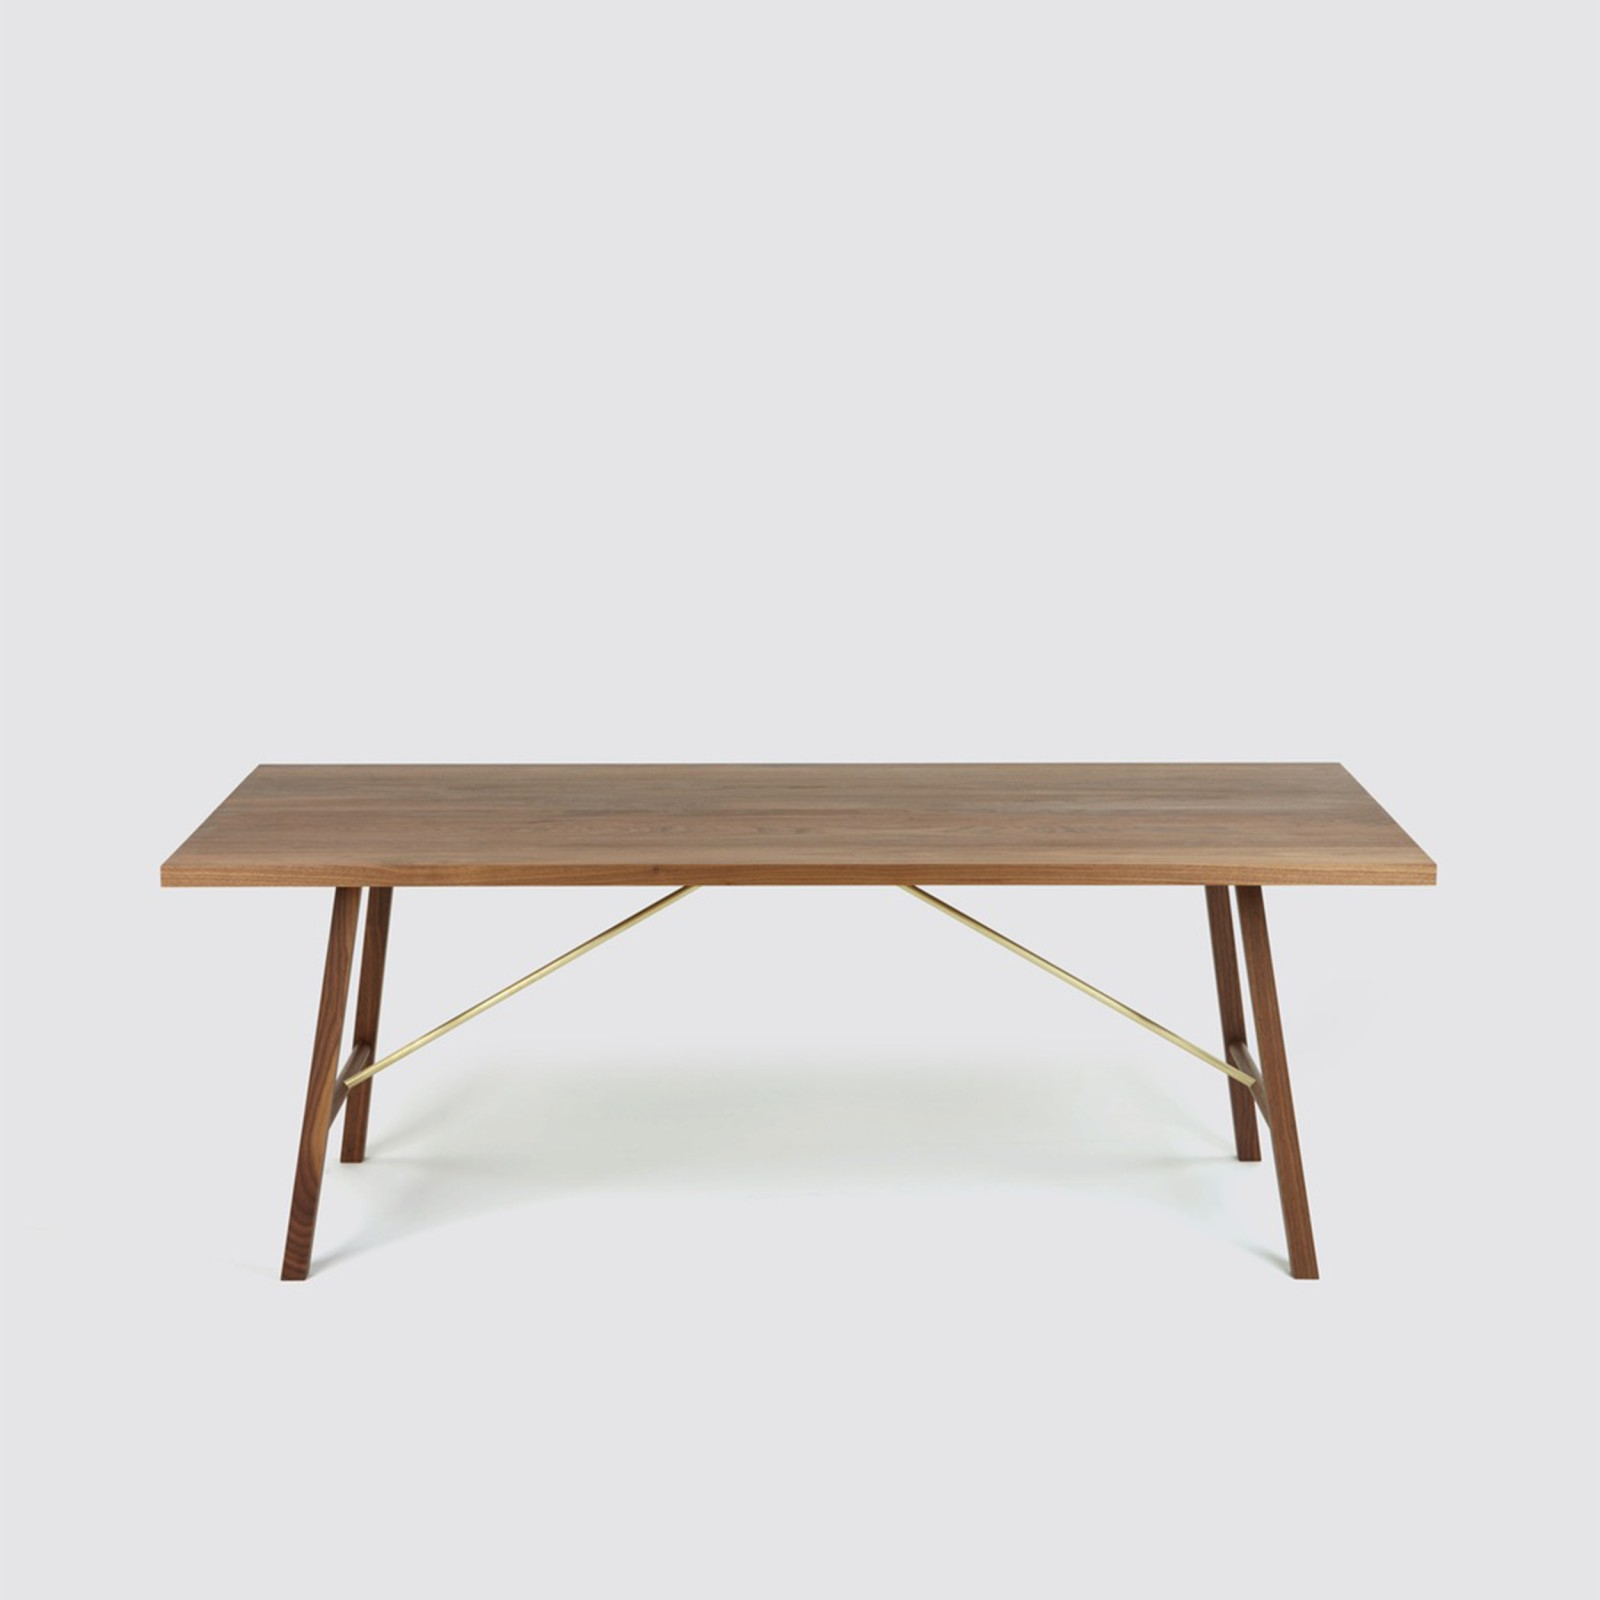 Dining Table Two Walnut, 180 cm Long